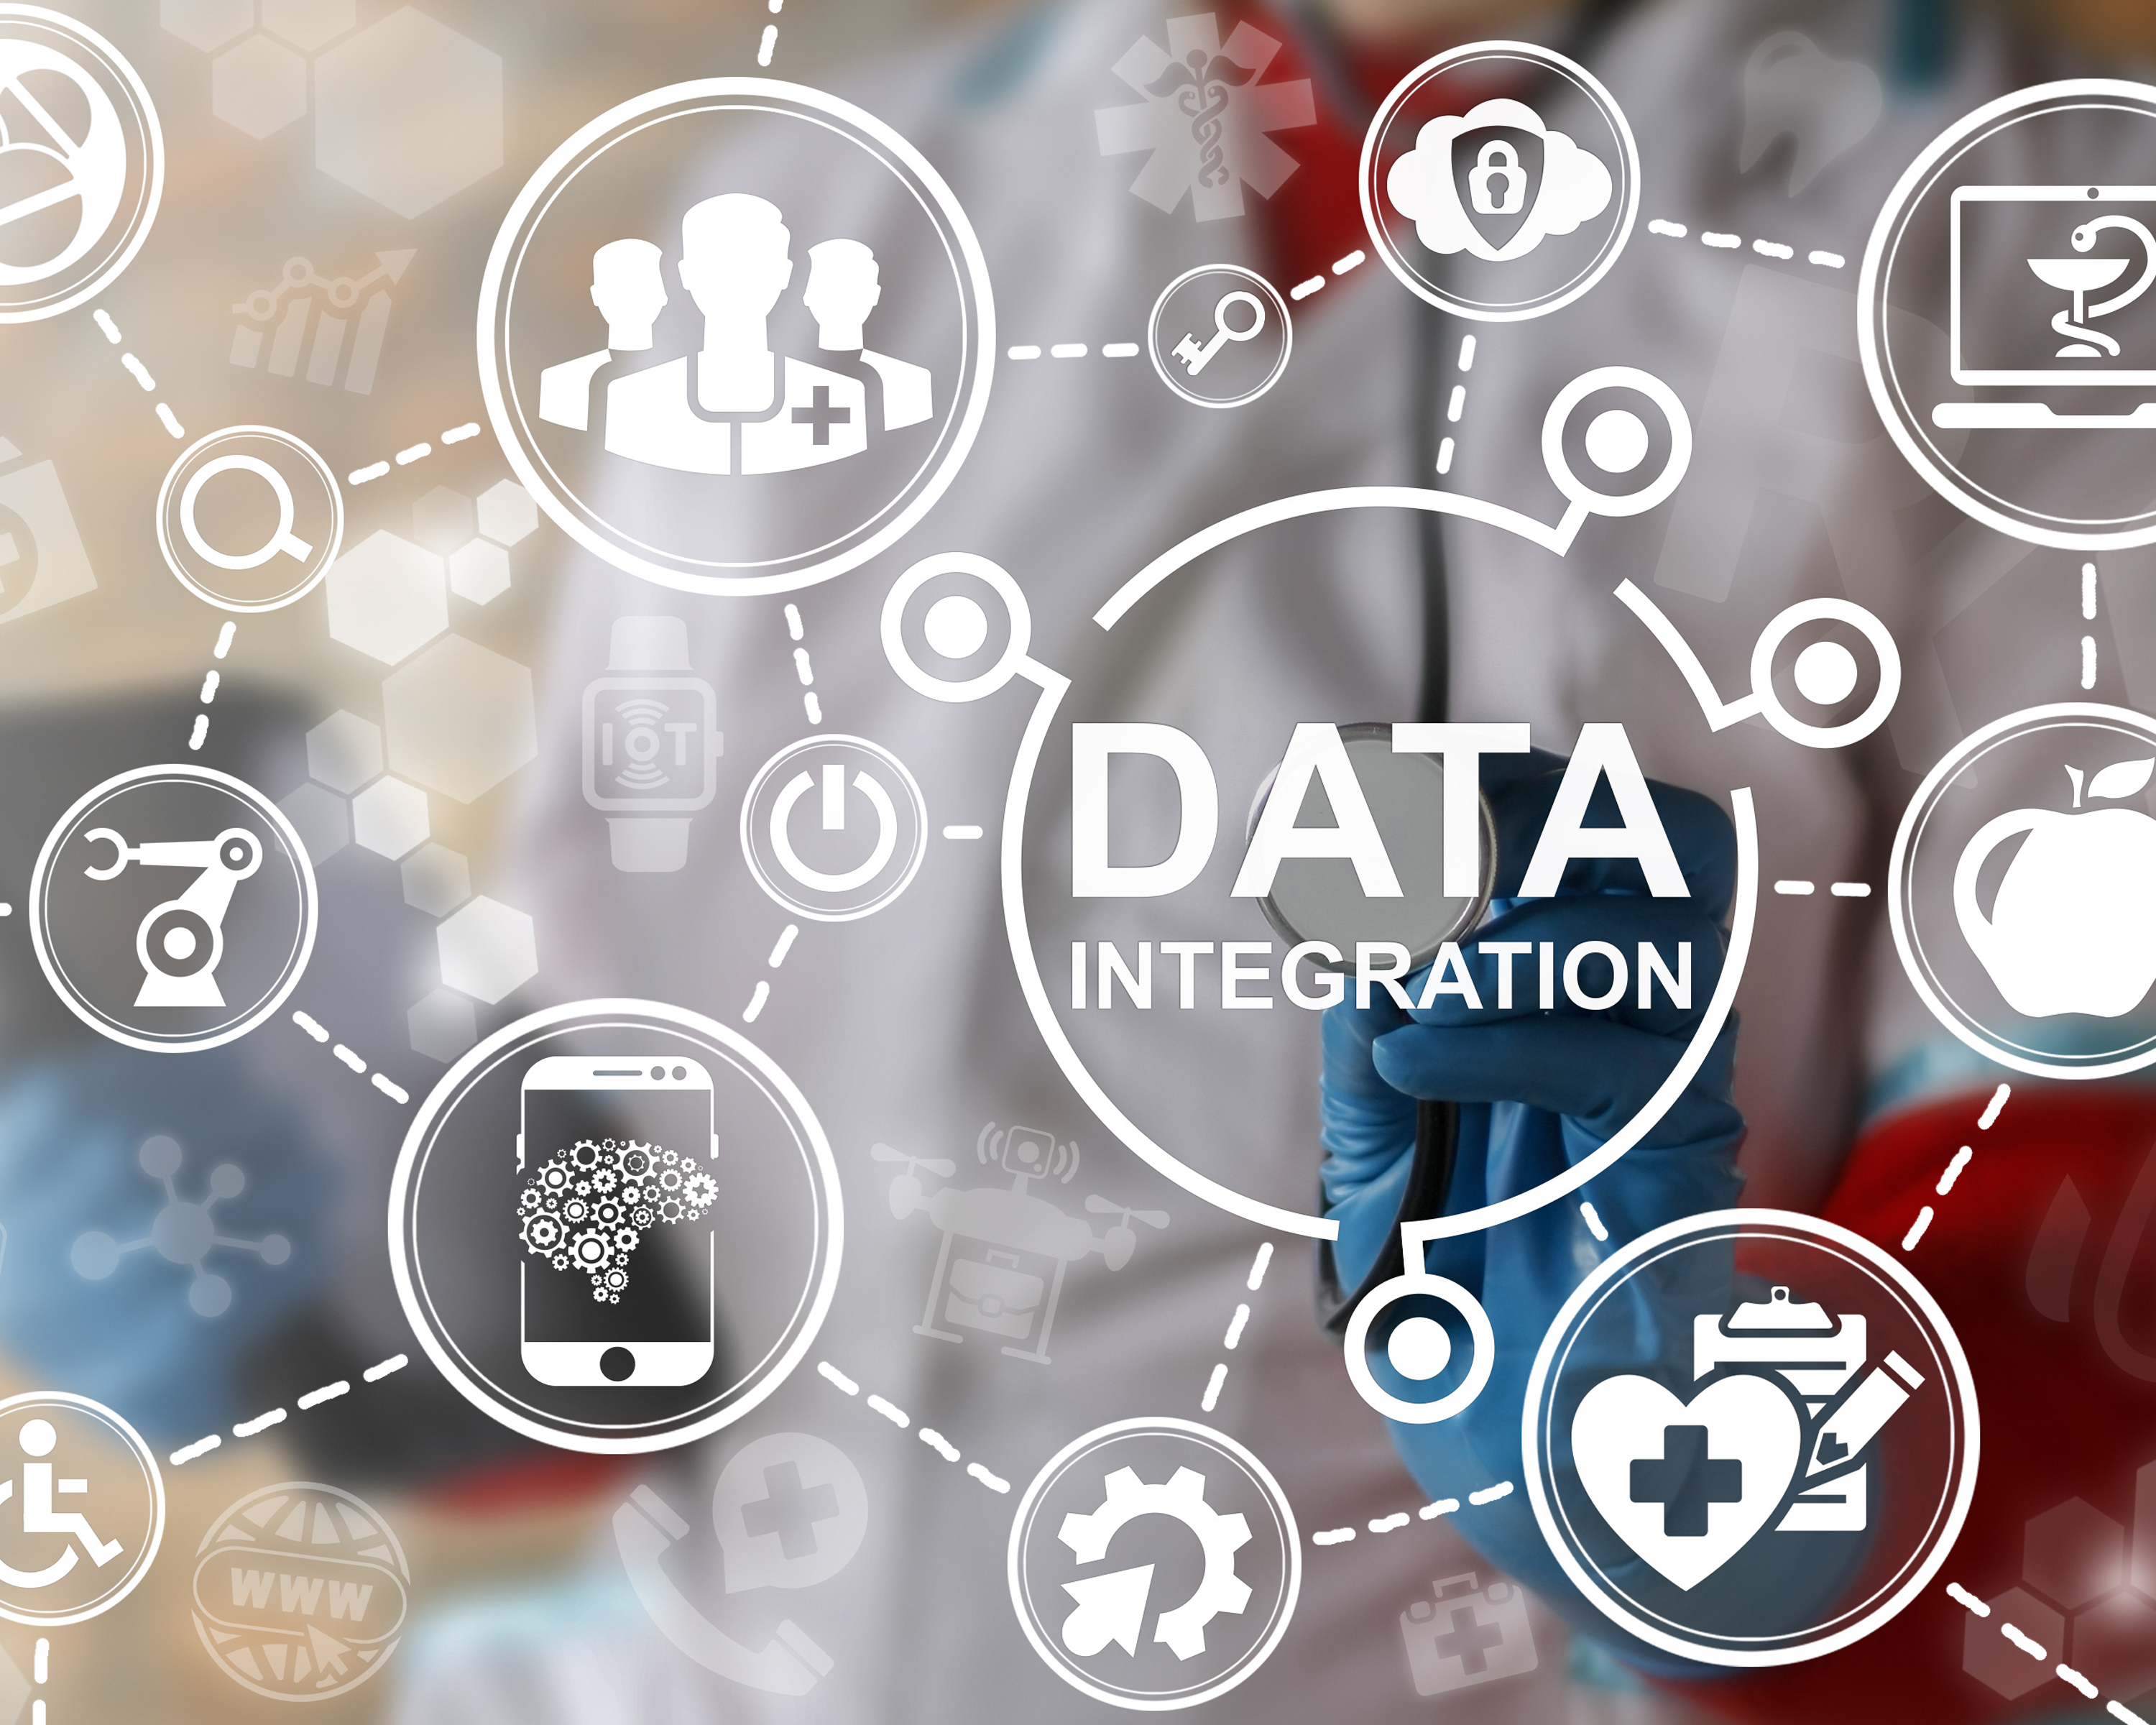 Clinical analytics focuses on the use of data and analytics to improve clinical treatment processes and outcomes.